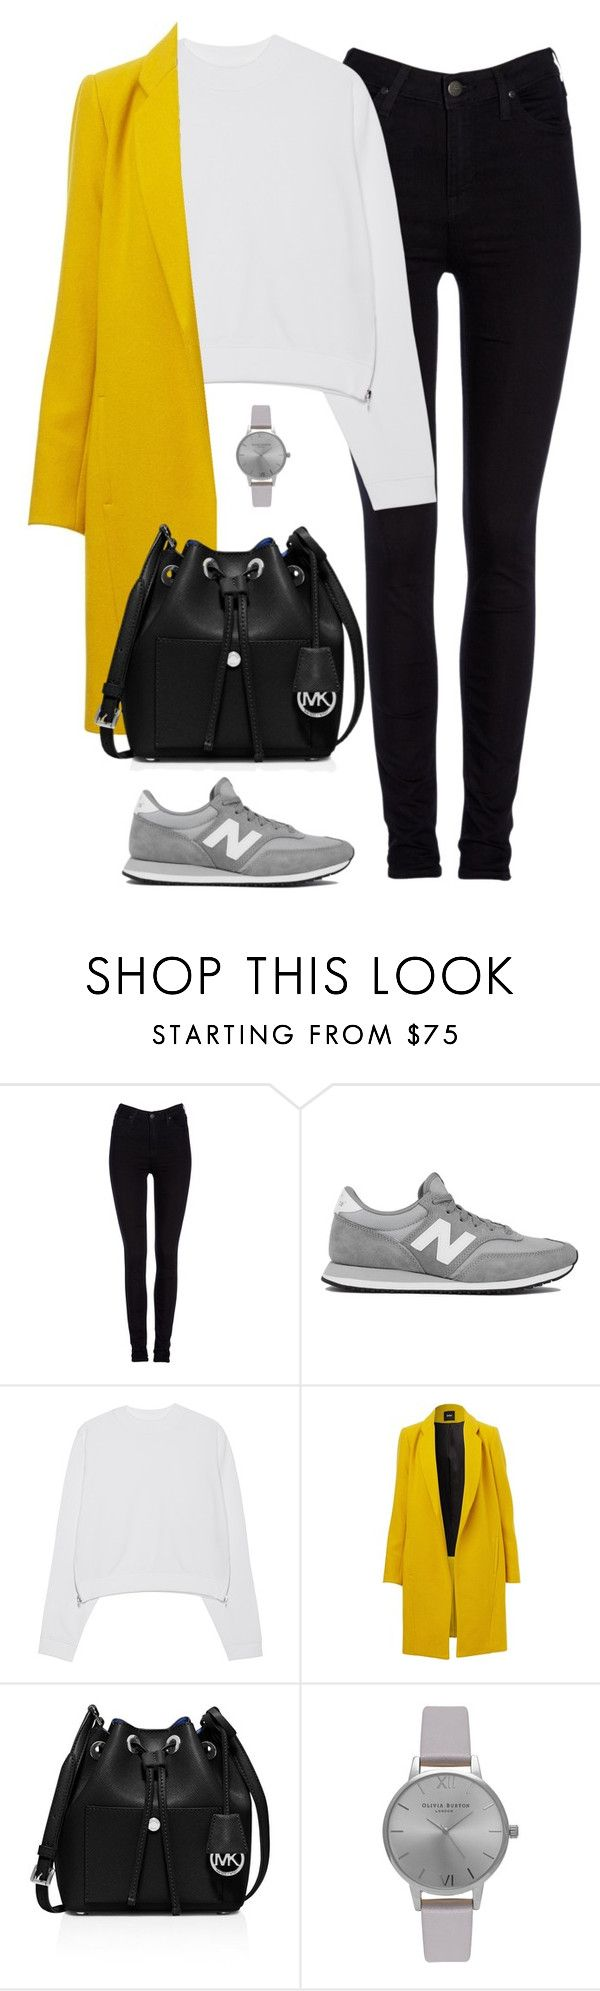 """Pop of color"" by christyandnef on Polyvore featuring Lee, New Balance, Acne Studios, MICHAEL Michael Kors, Olivia Burton, women's clothing, women, female, woman and misses"